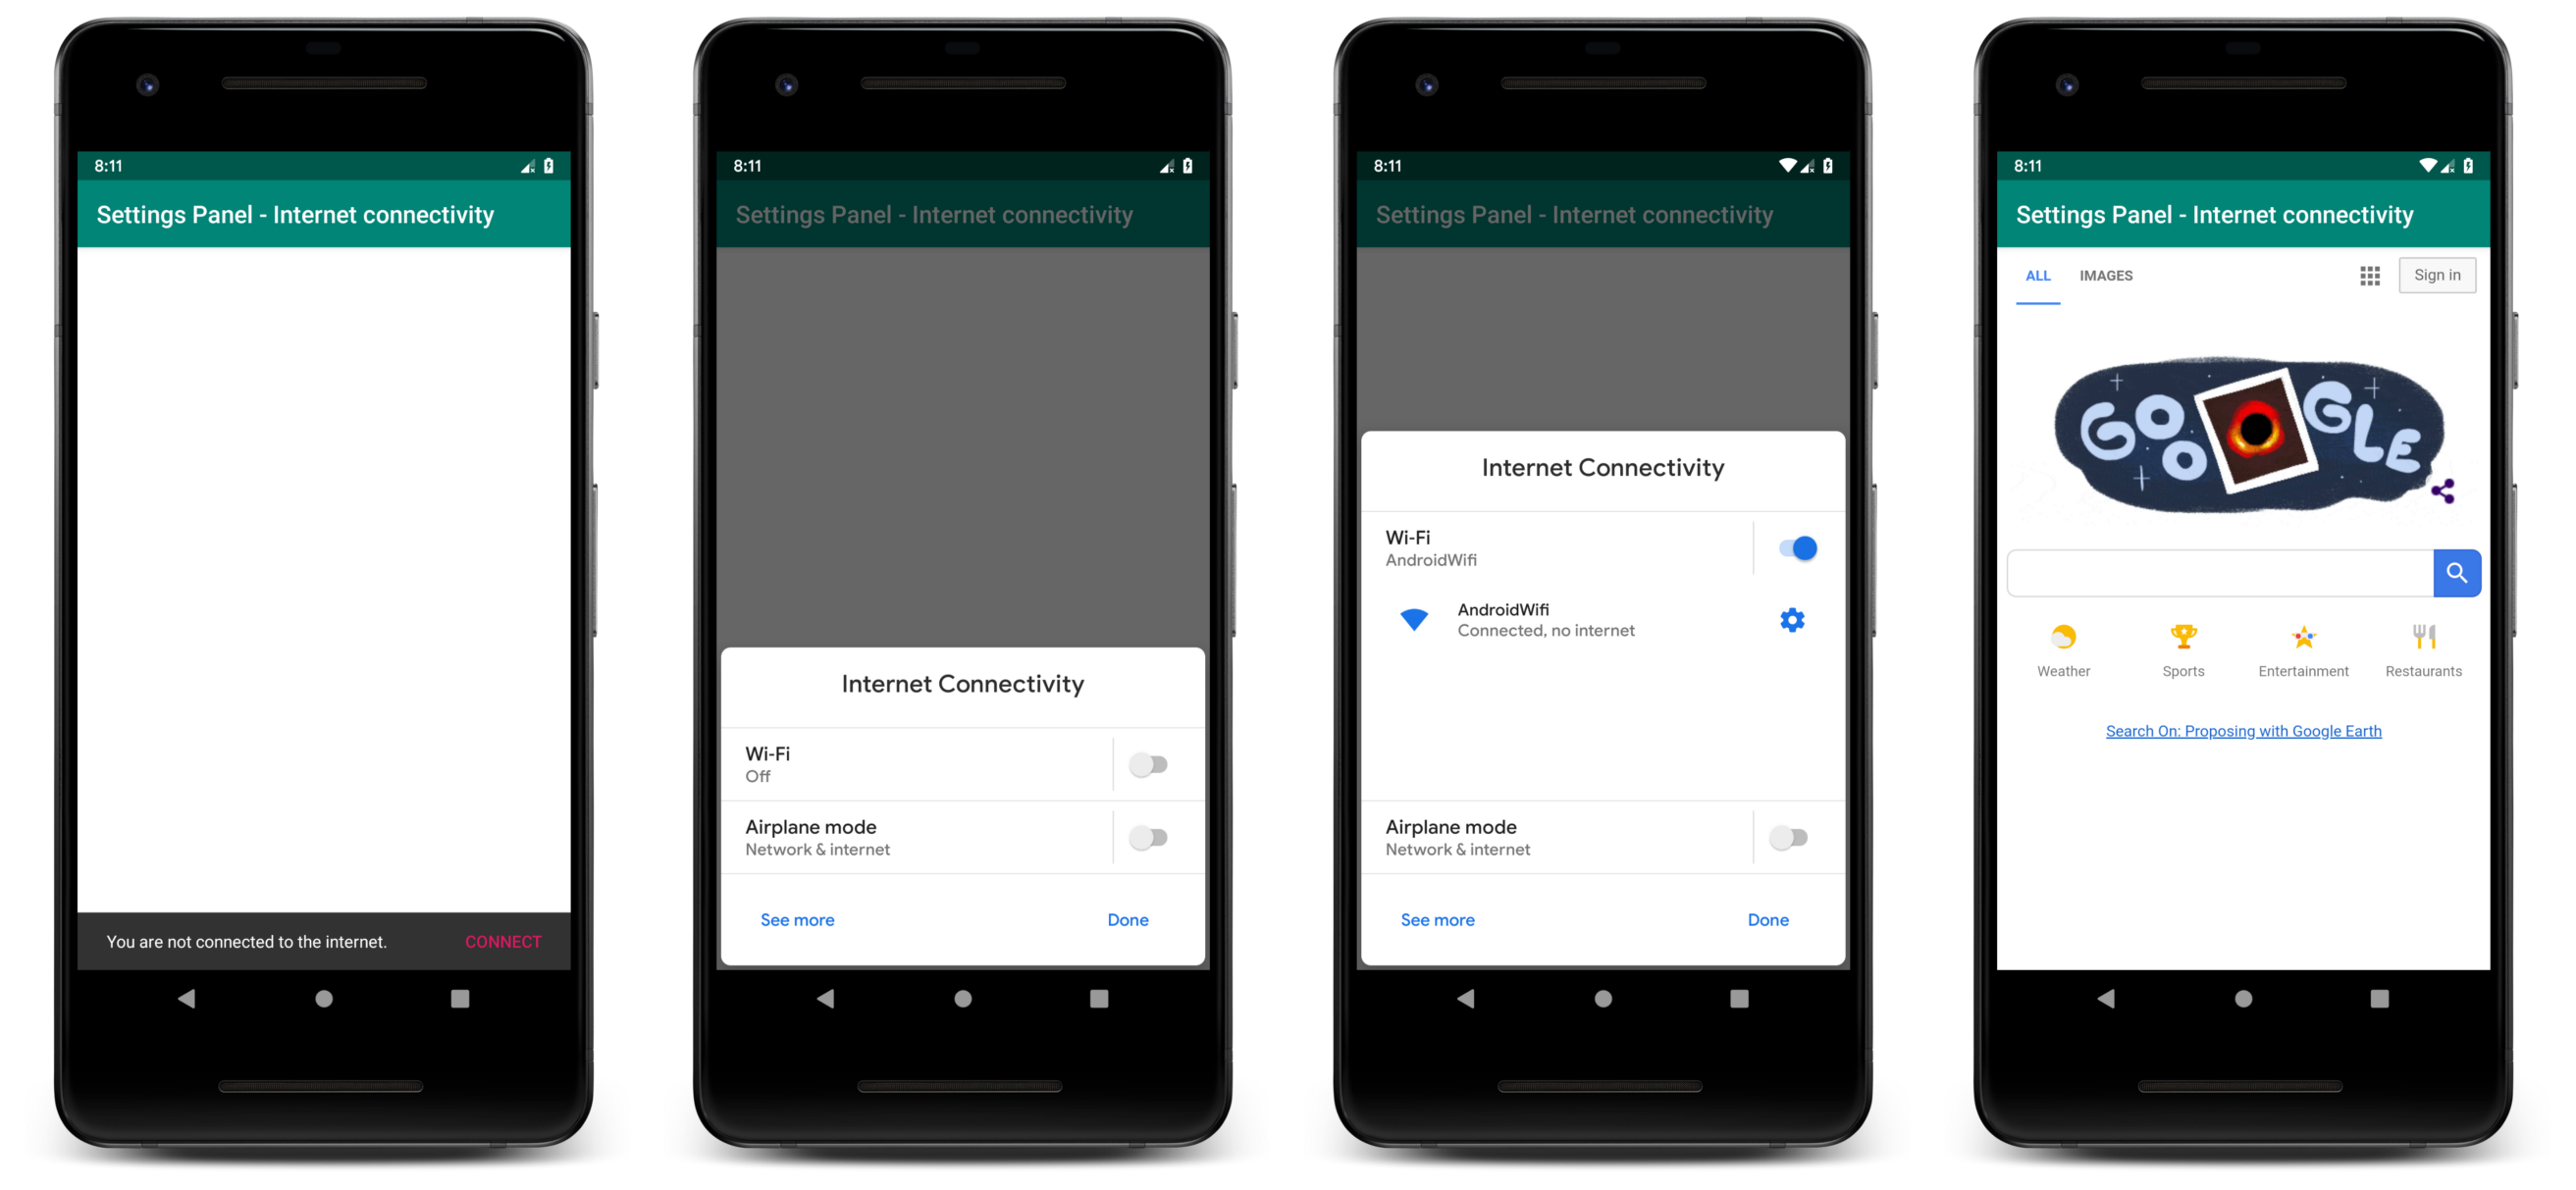 Android settings panels: App engagement - ProAndroidDev